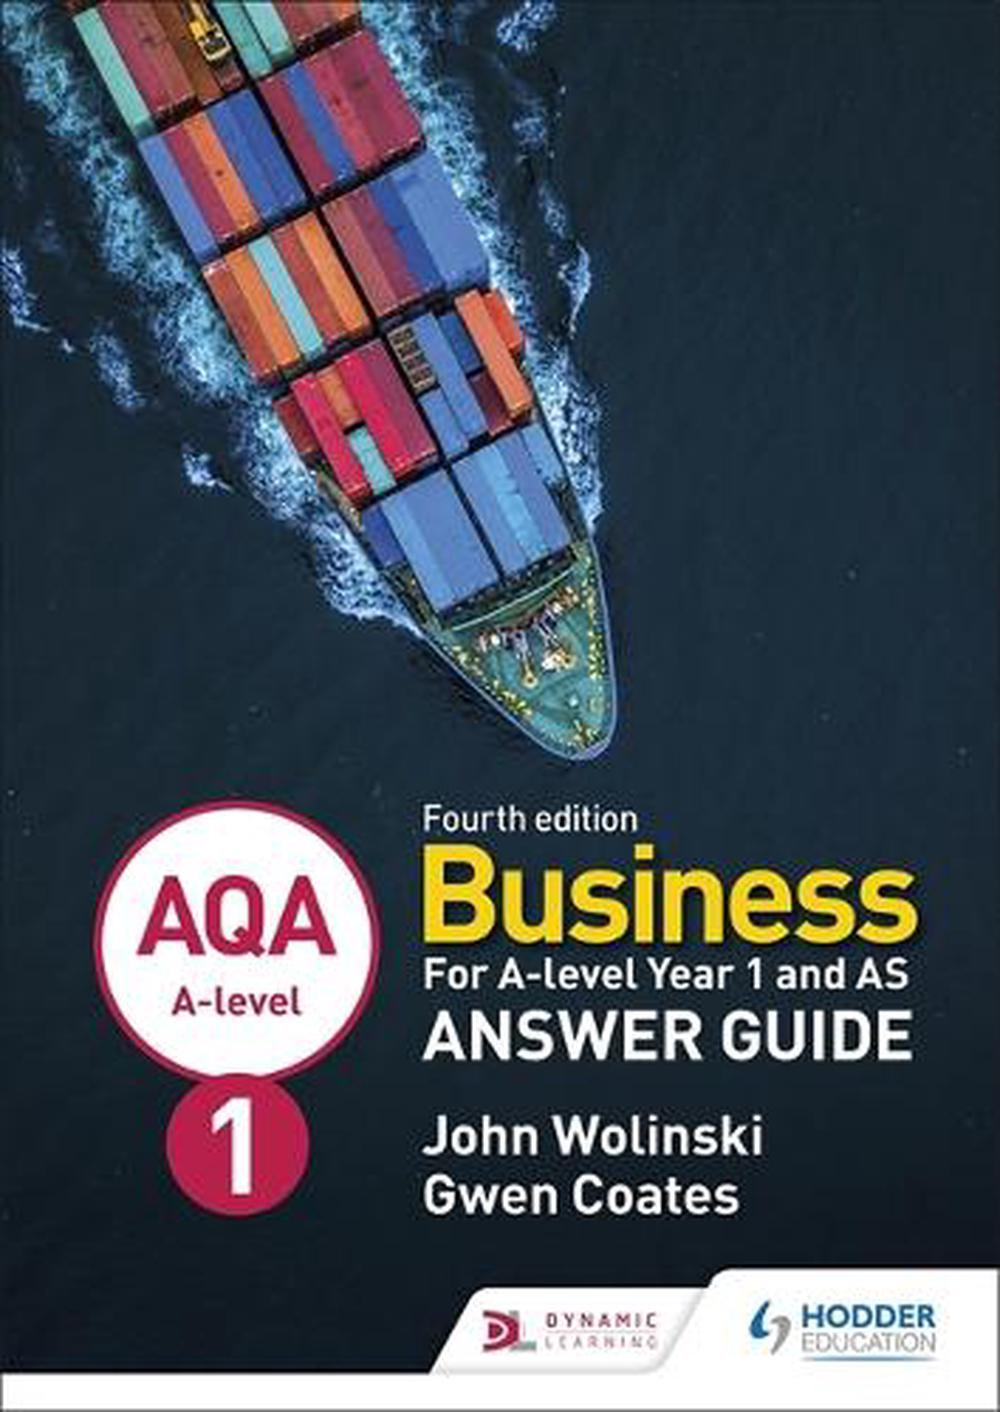 Aqa-A-level-Business-Year-1-and-As-Fourth-Edition-Answer-Guide-wolinski-and-Coa